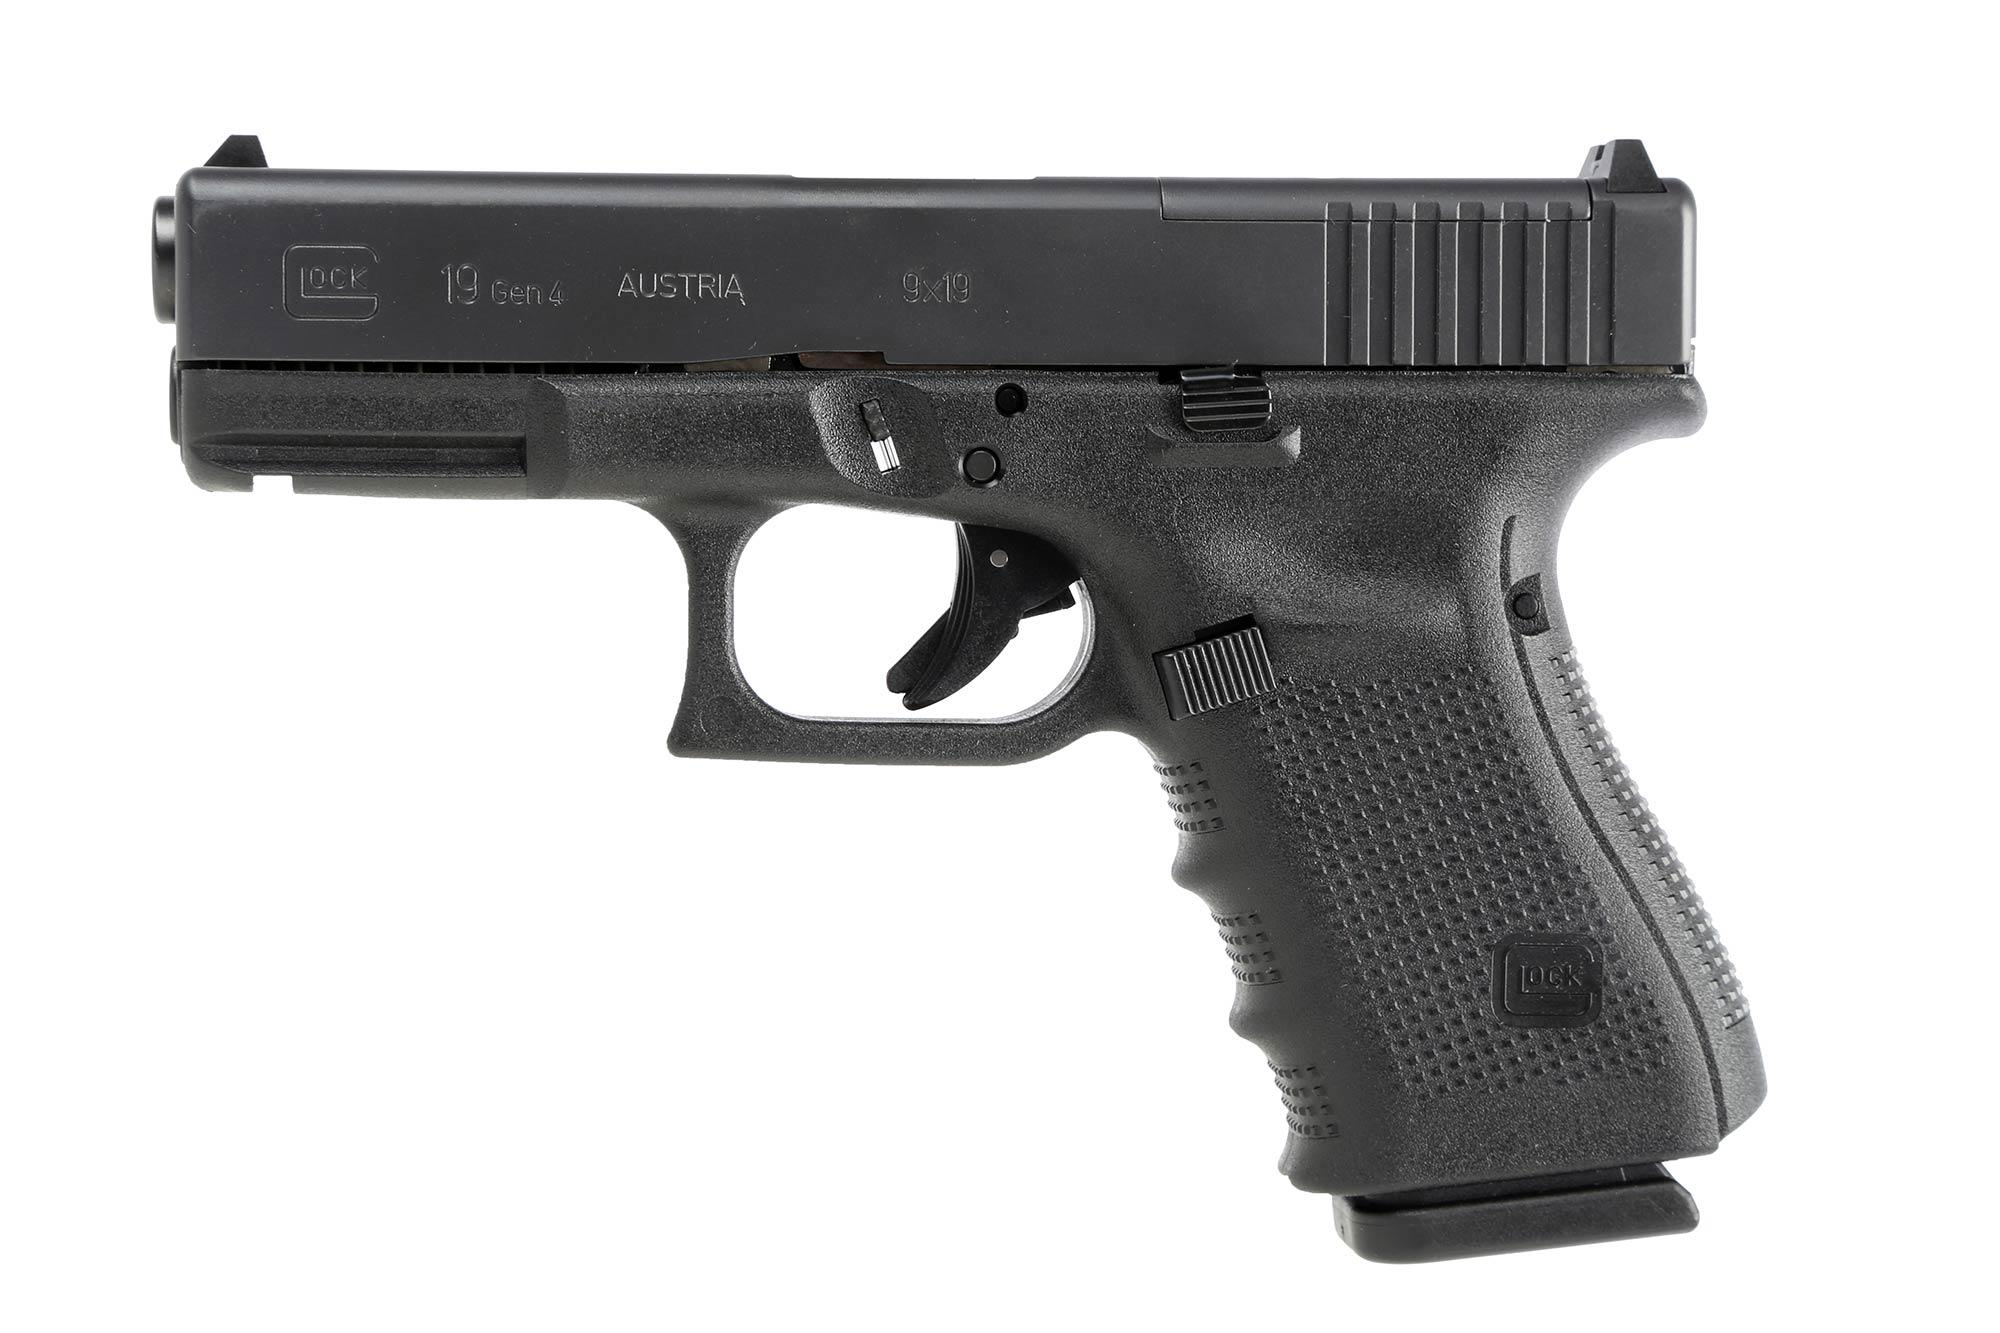 The Glock 19 Gen4 MOS compact pistol features the safe action trigger system